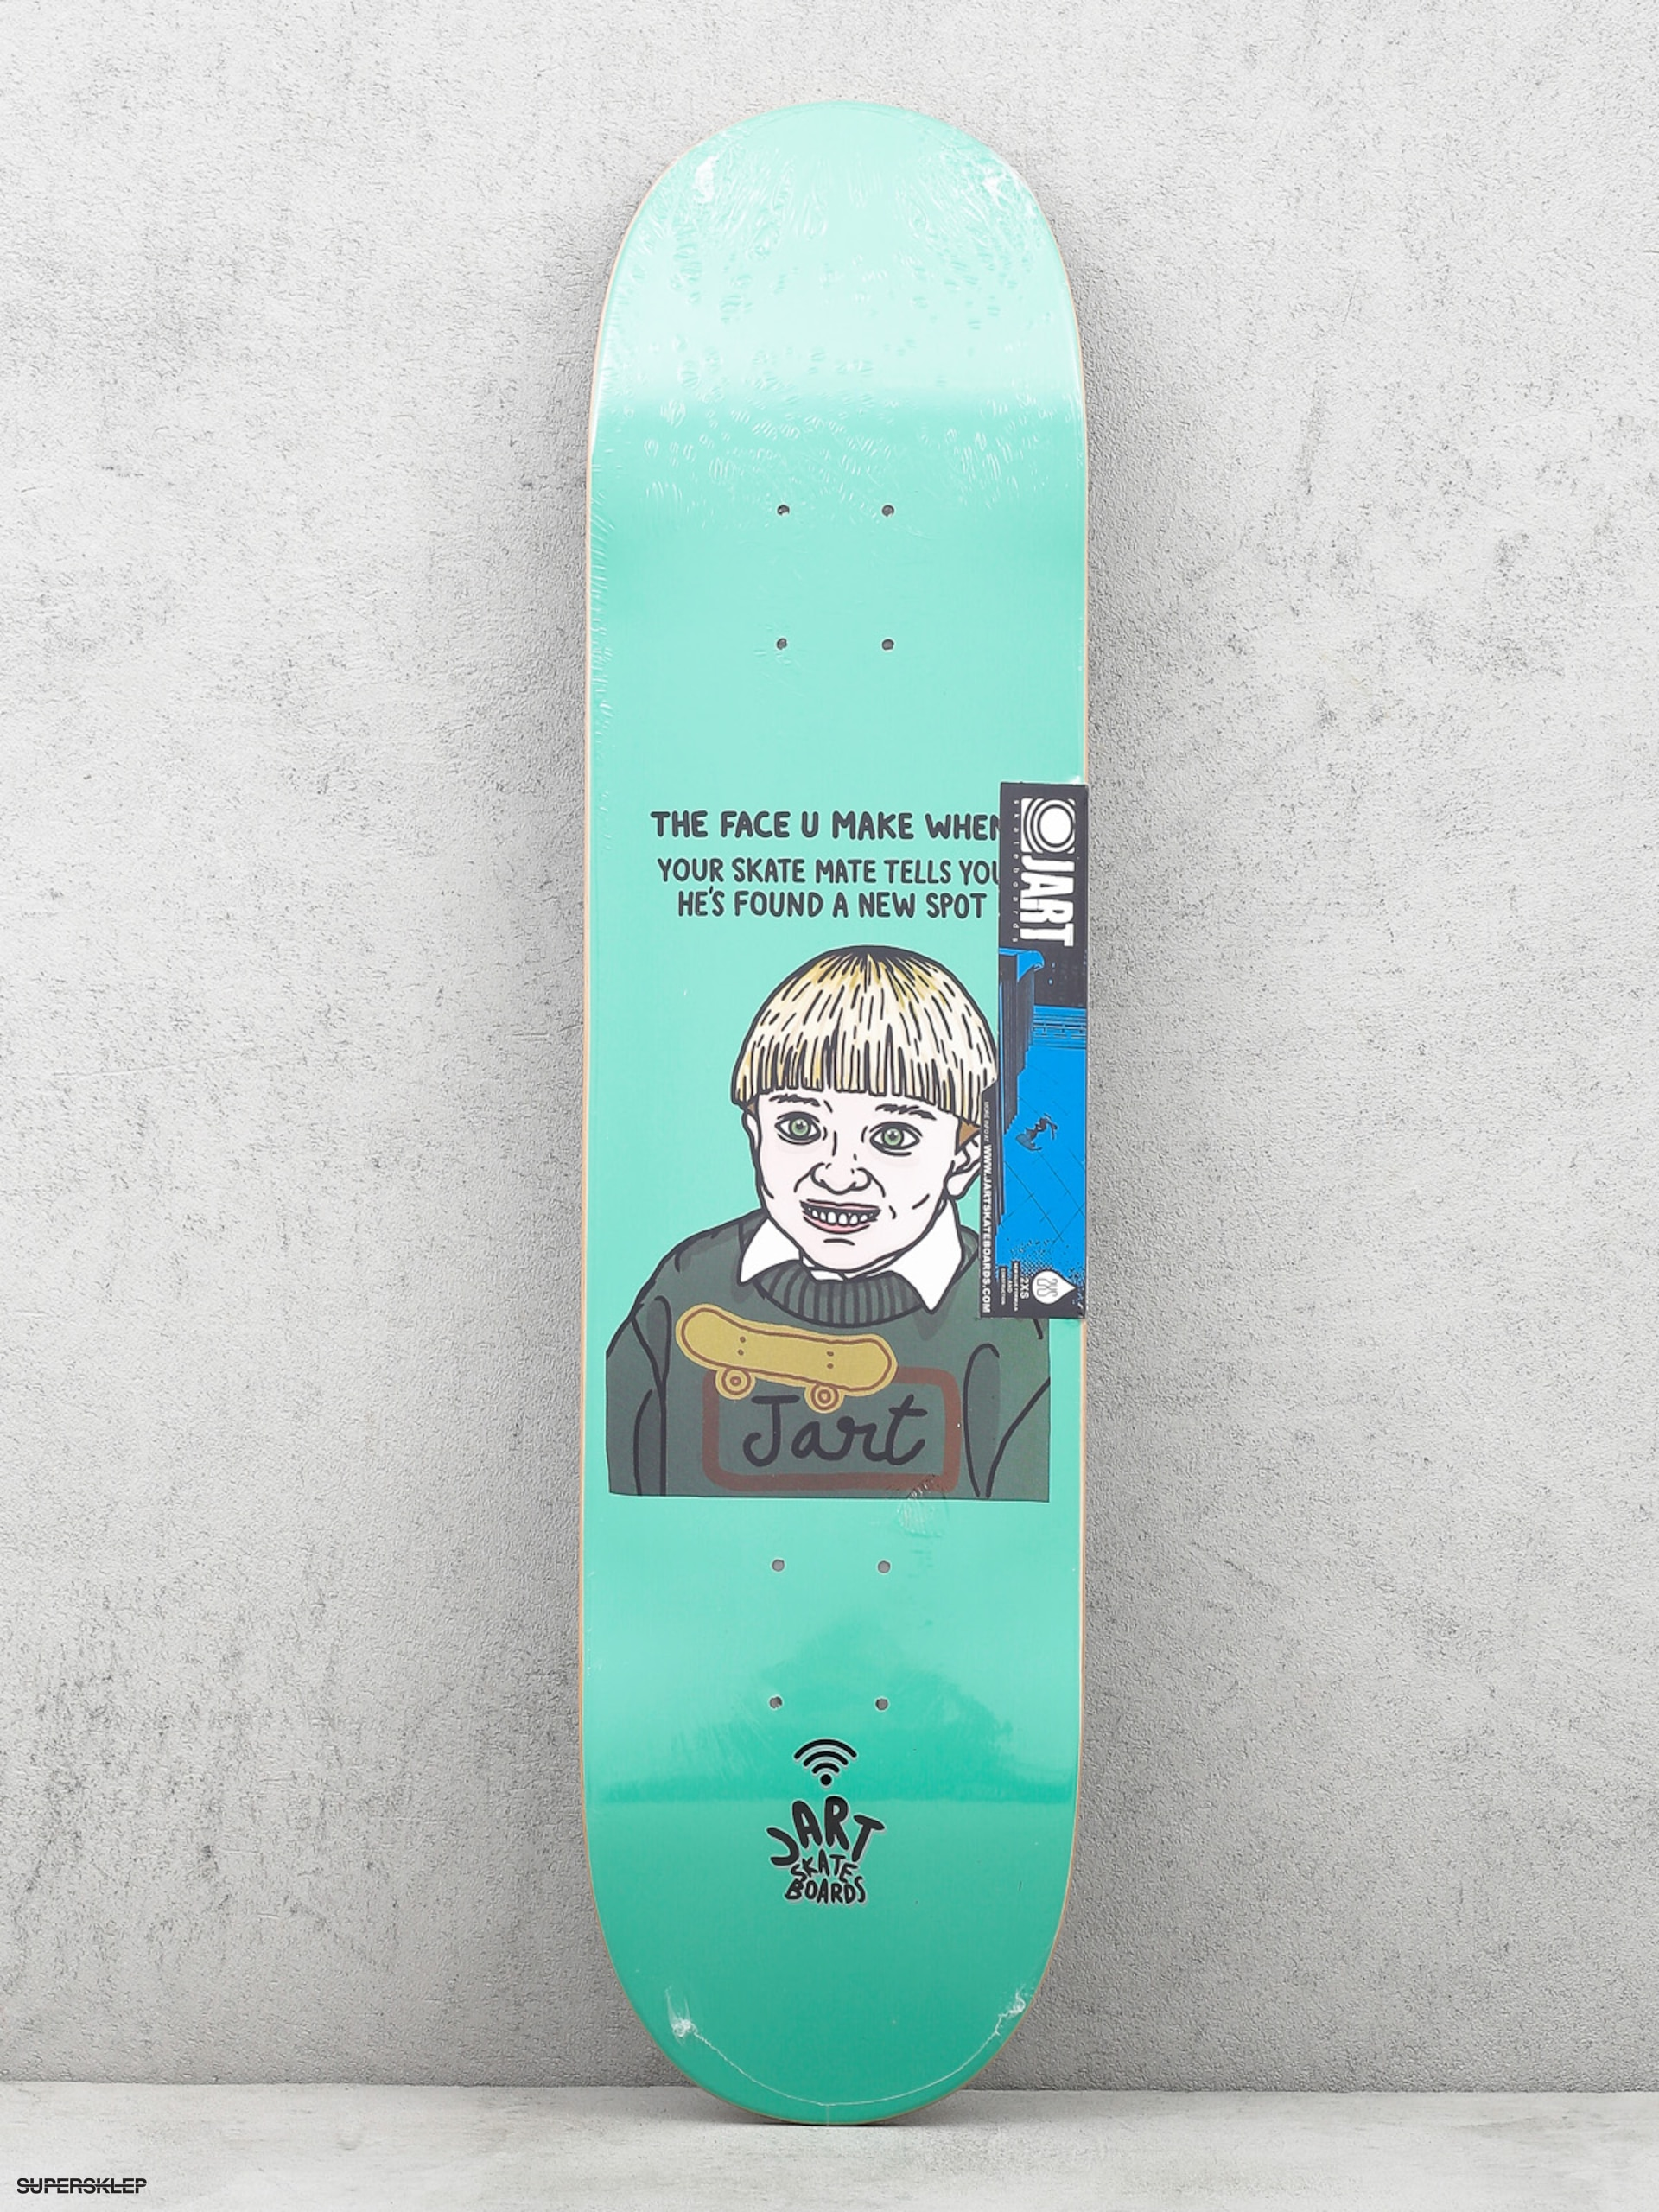 Deck Jart The Face U Make When (mint green)